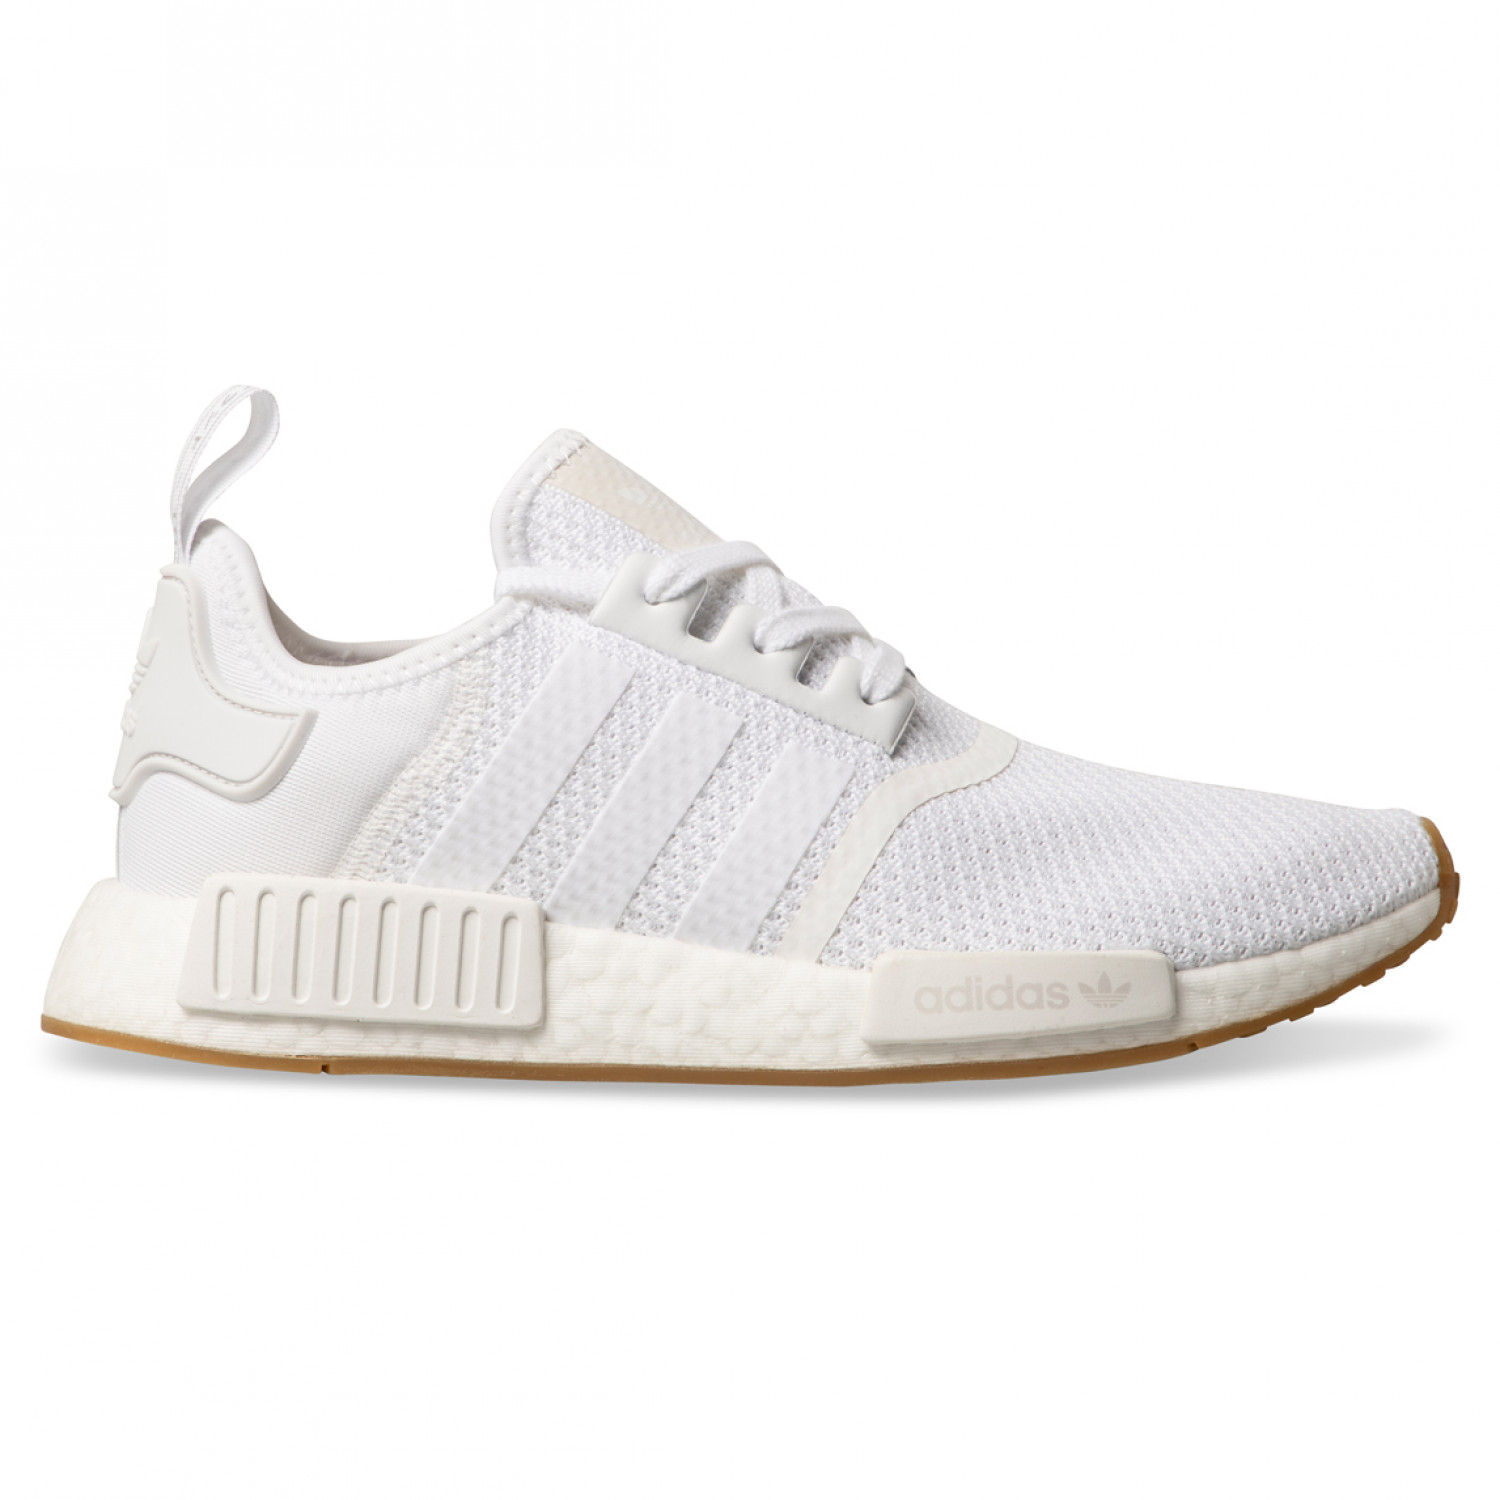 the adidas nmd